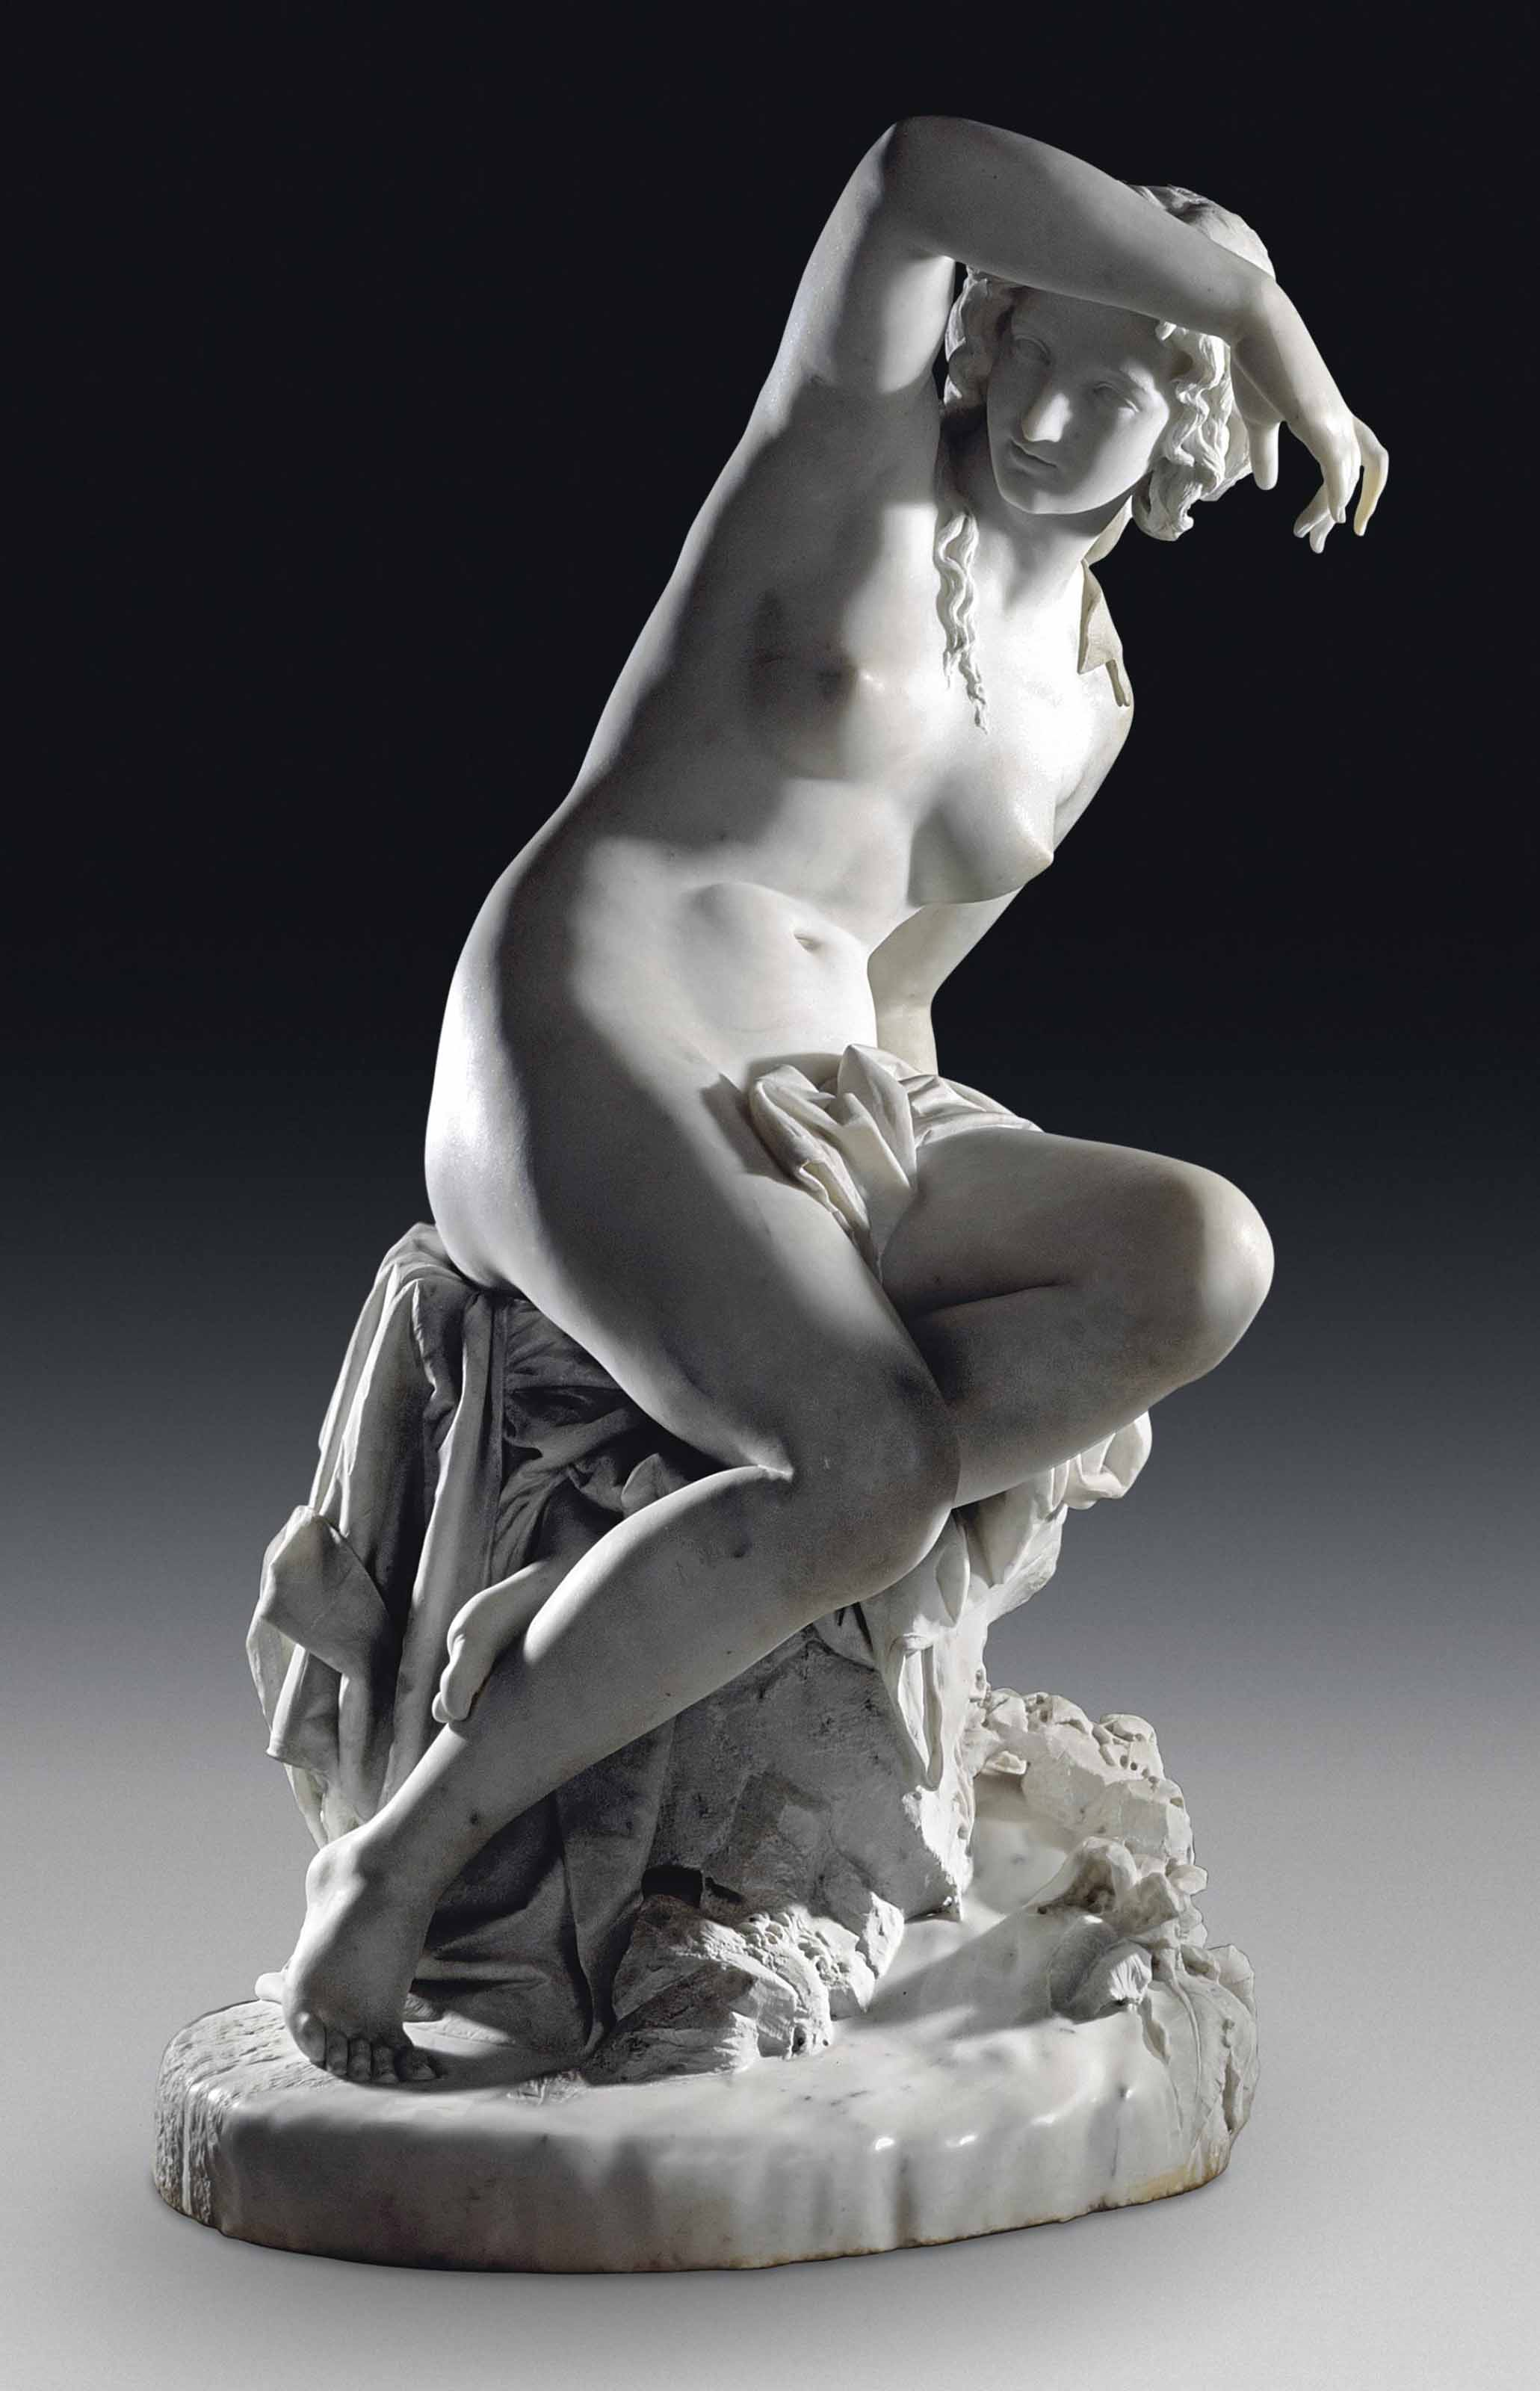 AN ITALIAN MARBLE FIGURE OF A FEMALE NYMPH, ENTITLED 'LA BAGNANTI' (BATHING WOMAN)